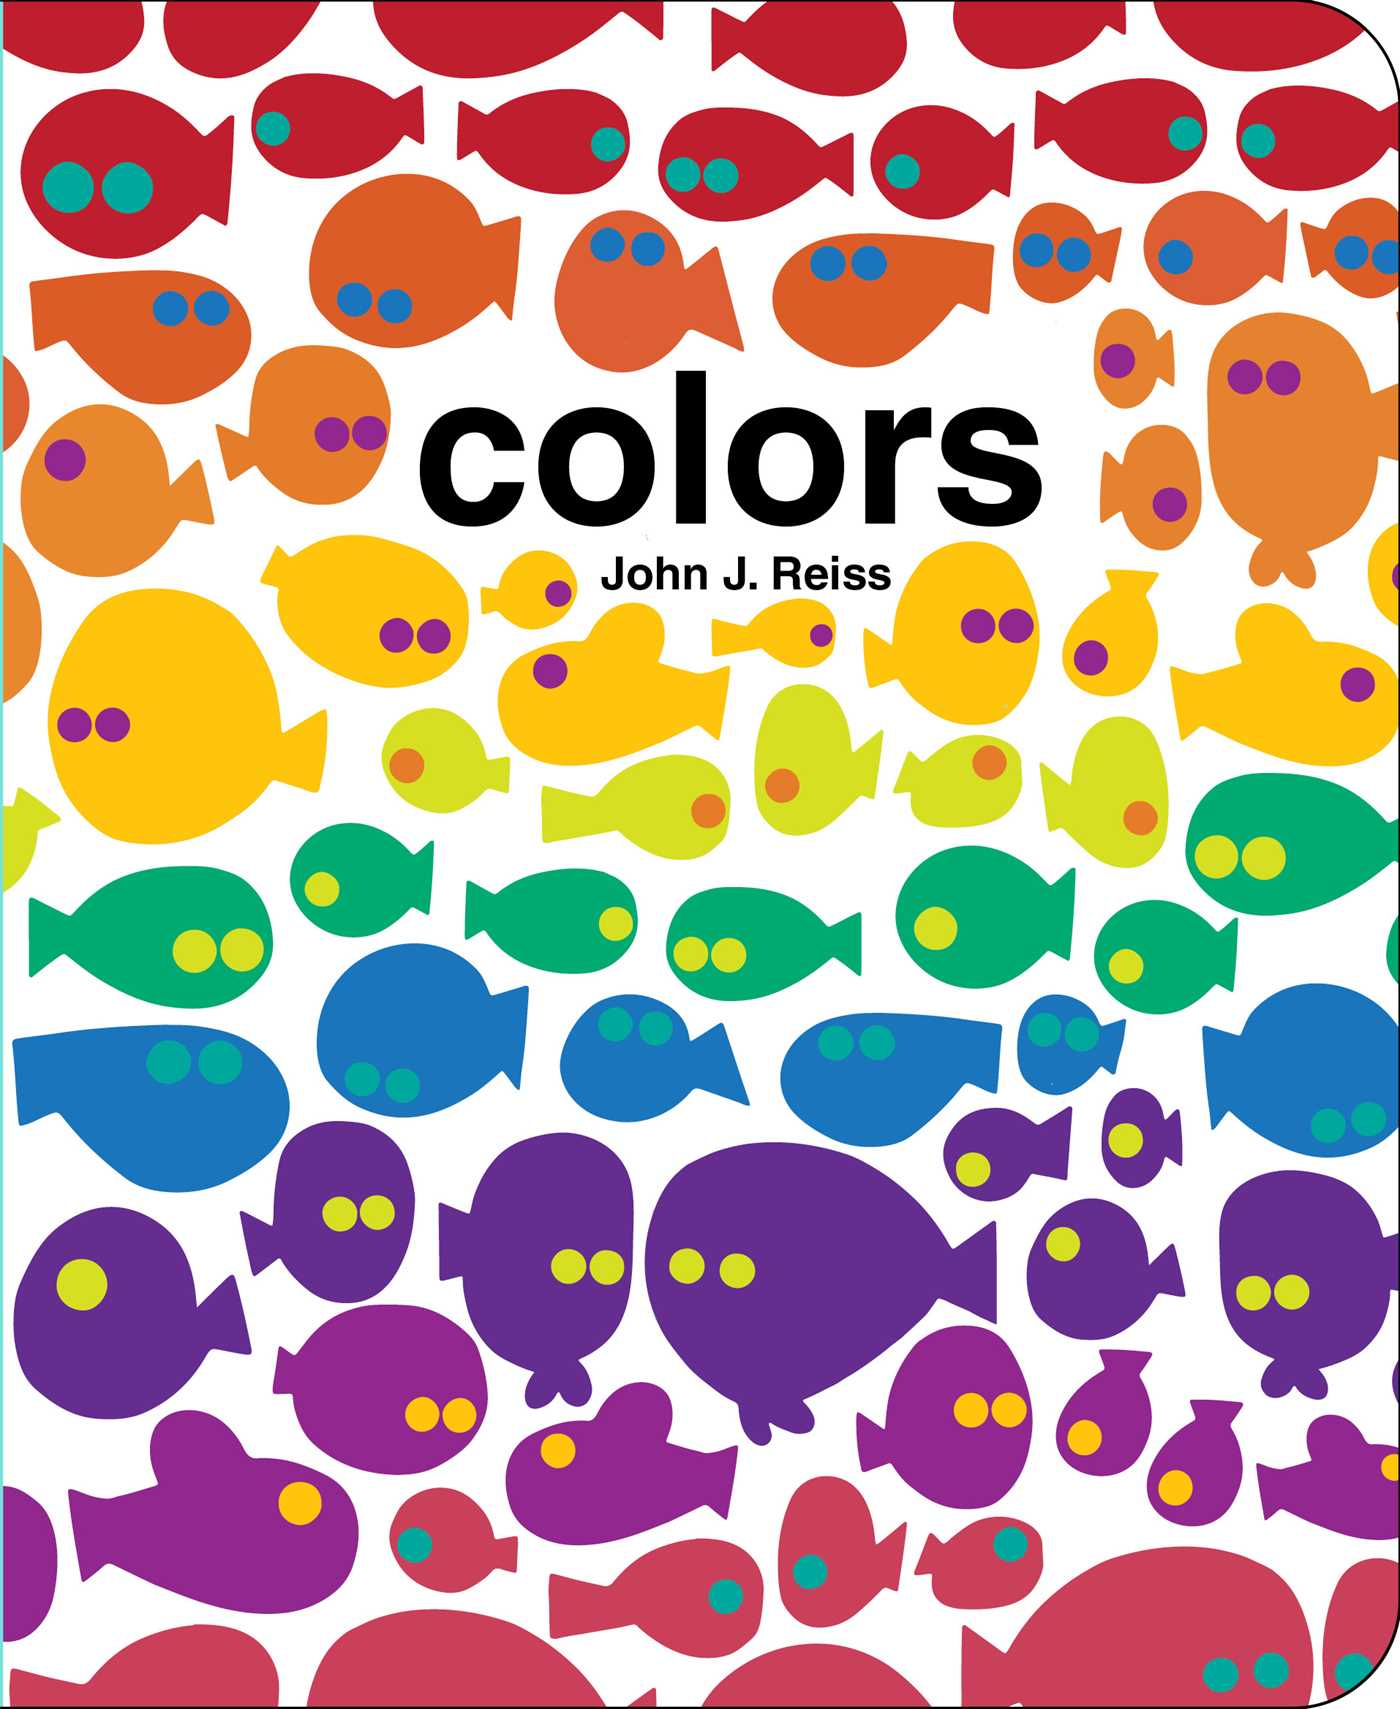 Colors | Book by John J. Reiss | Official Publisher Page | Simon ...